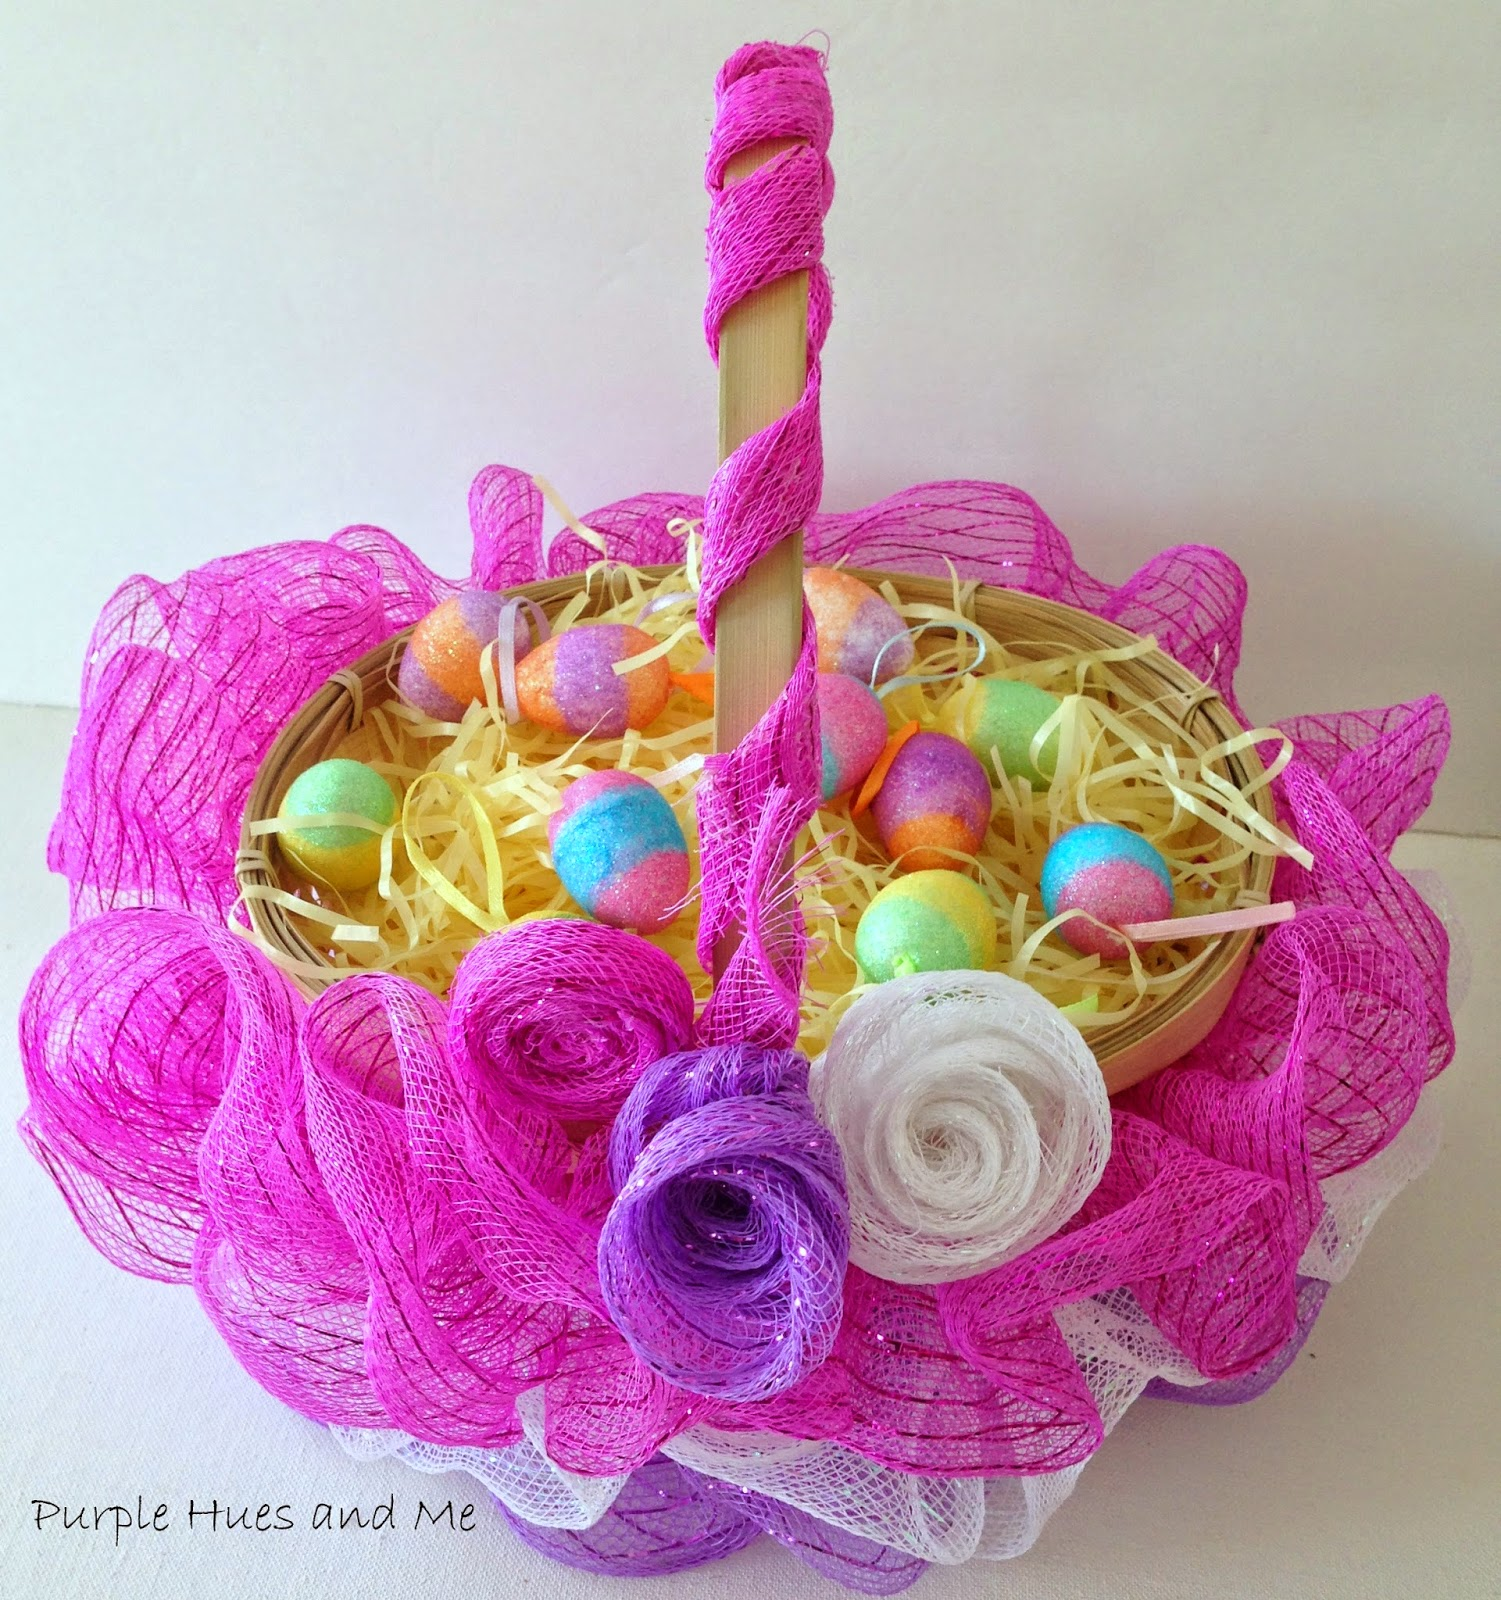 Two Silly Monkeys Easter Basket Wreath: -Crafting, DIY, Projects, Decorating